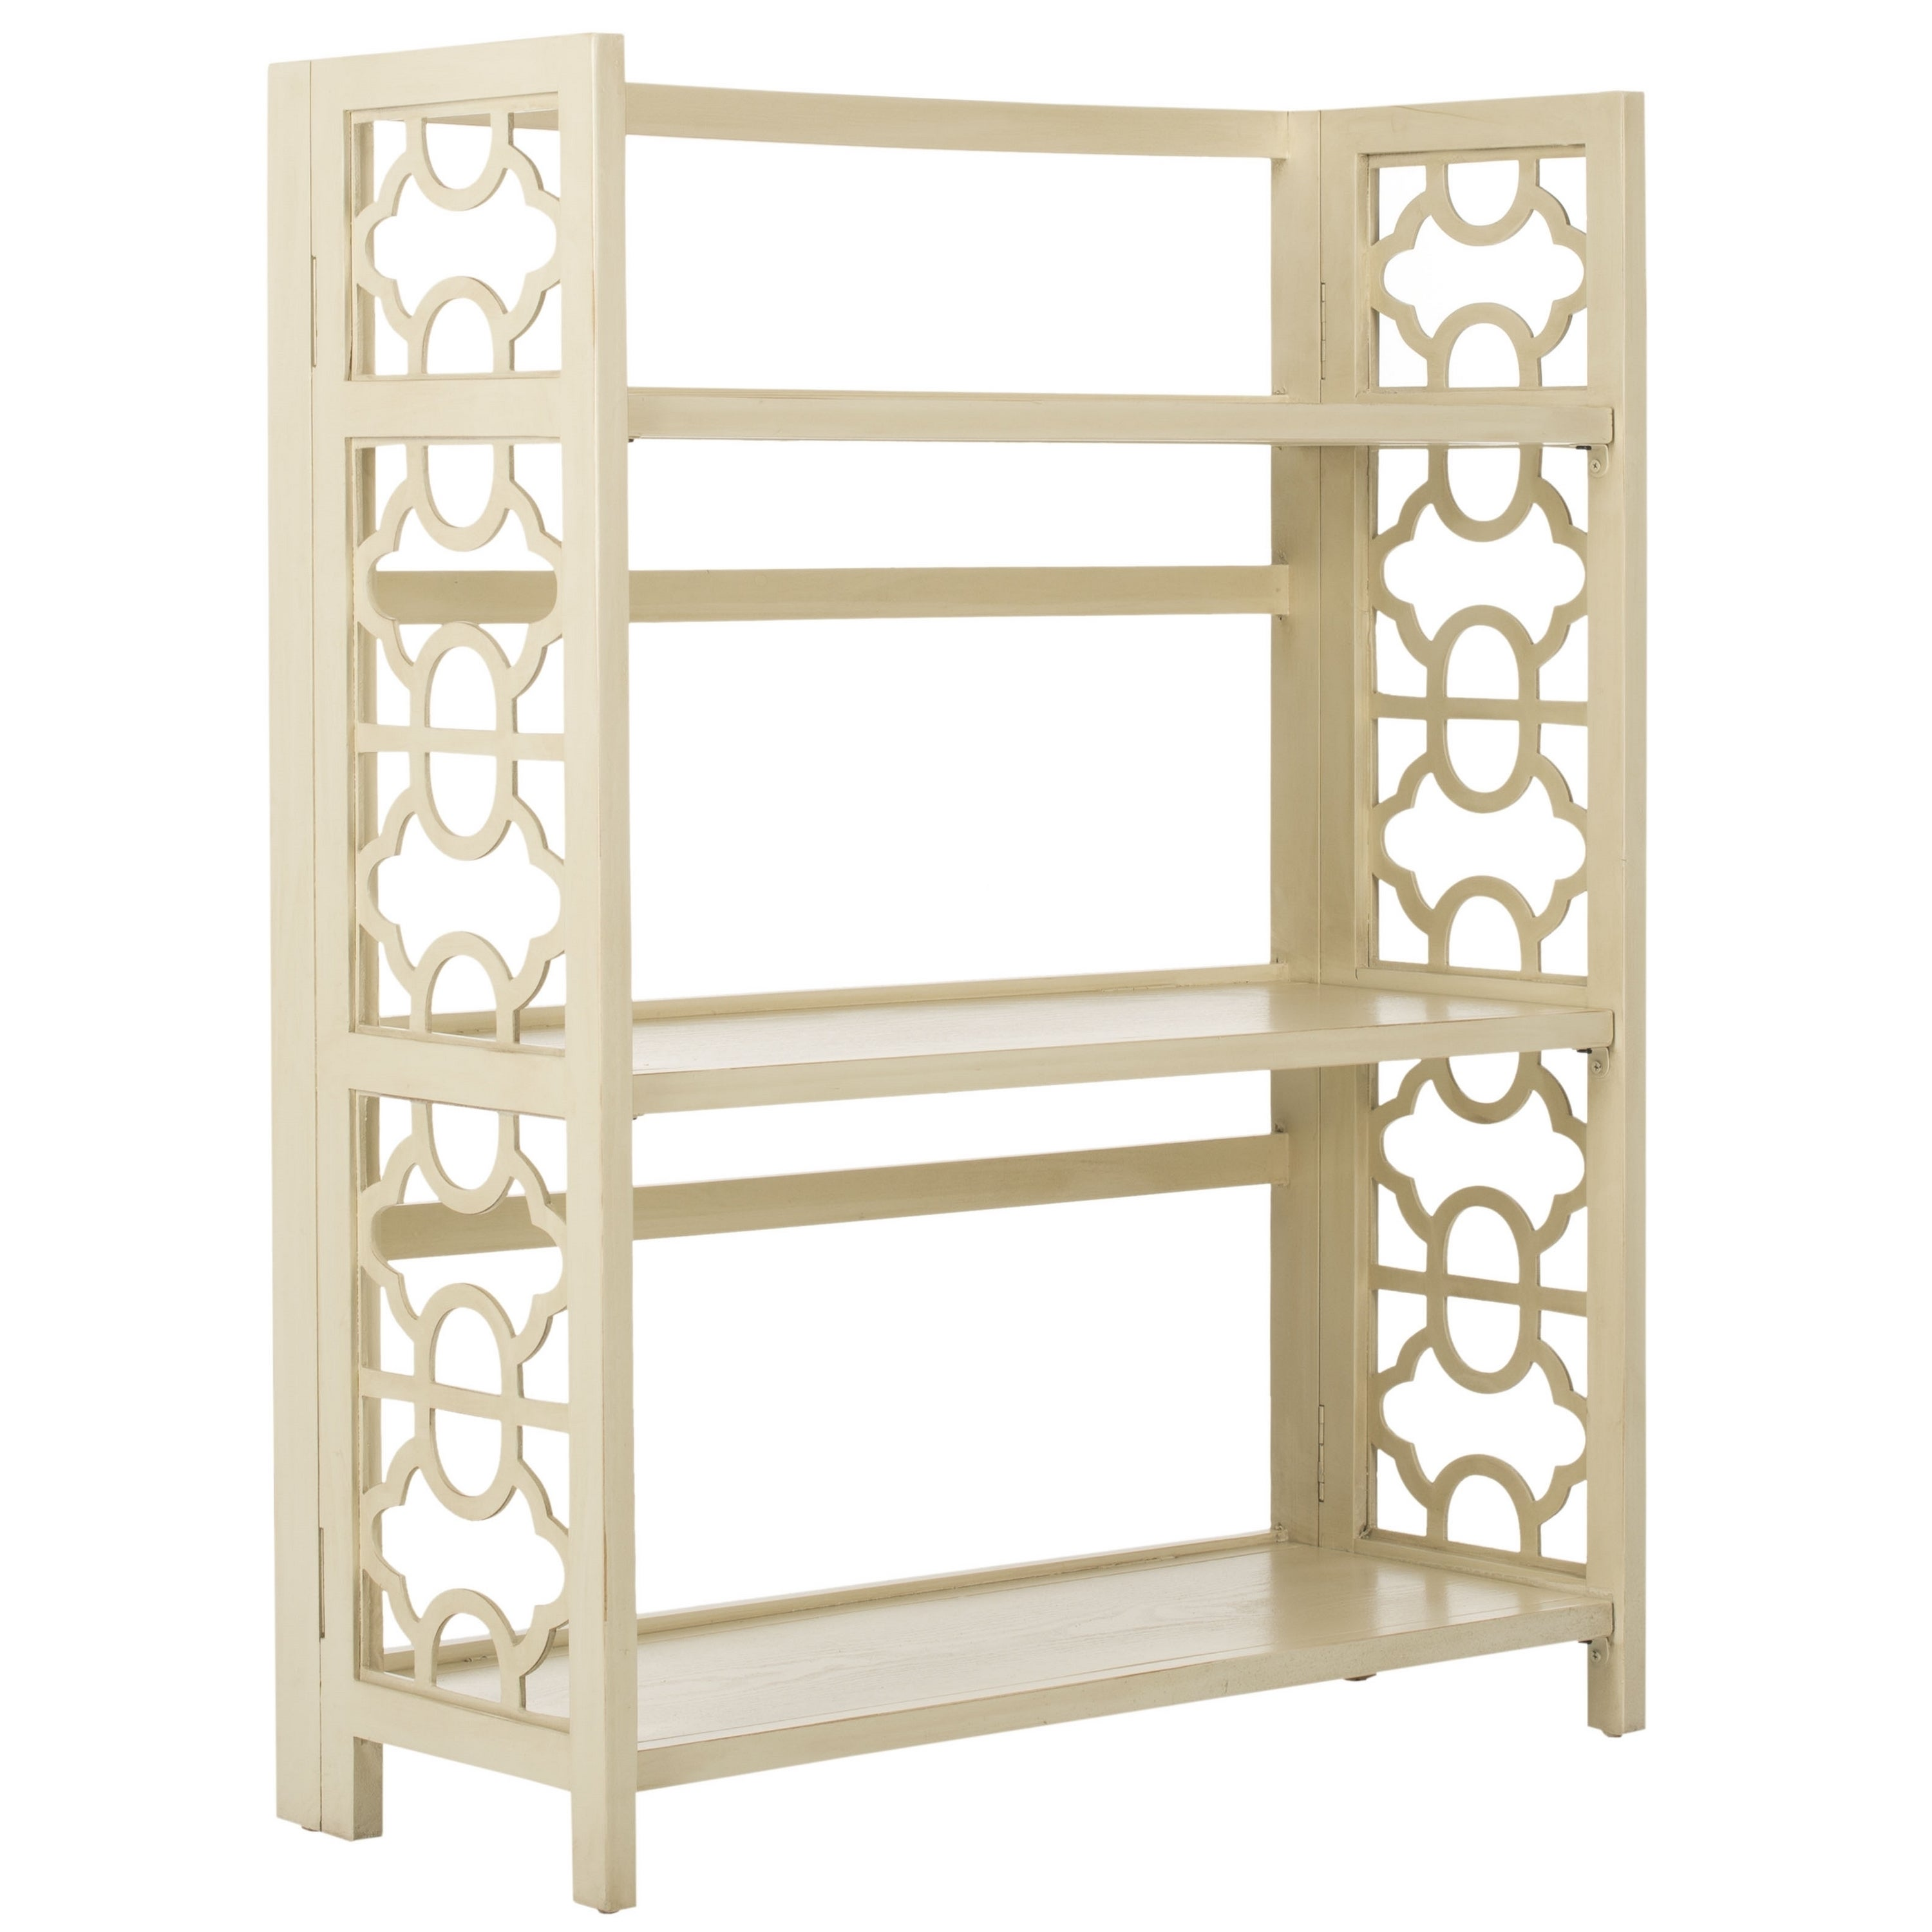 Safavieh Natalie Antique White Low Bookcase Free Shipping Today 9048945